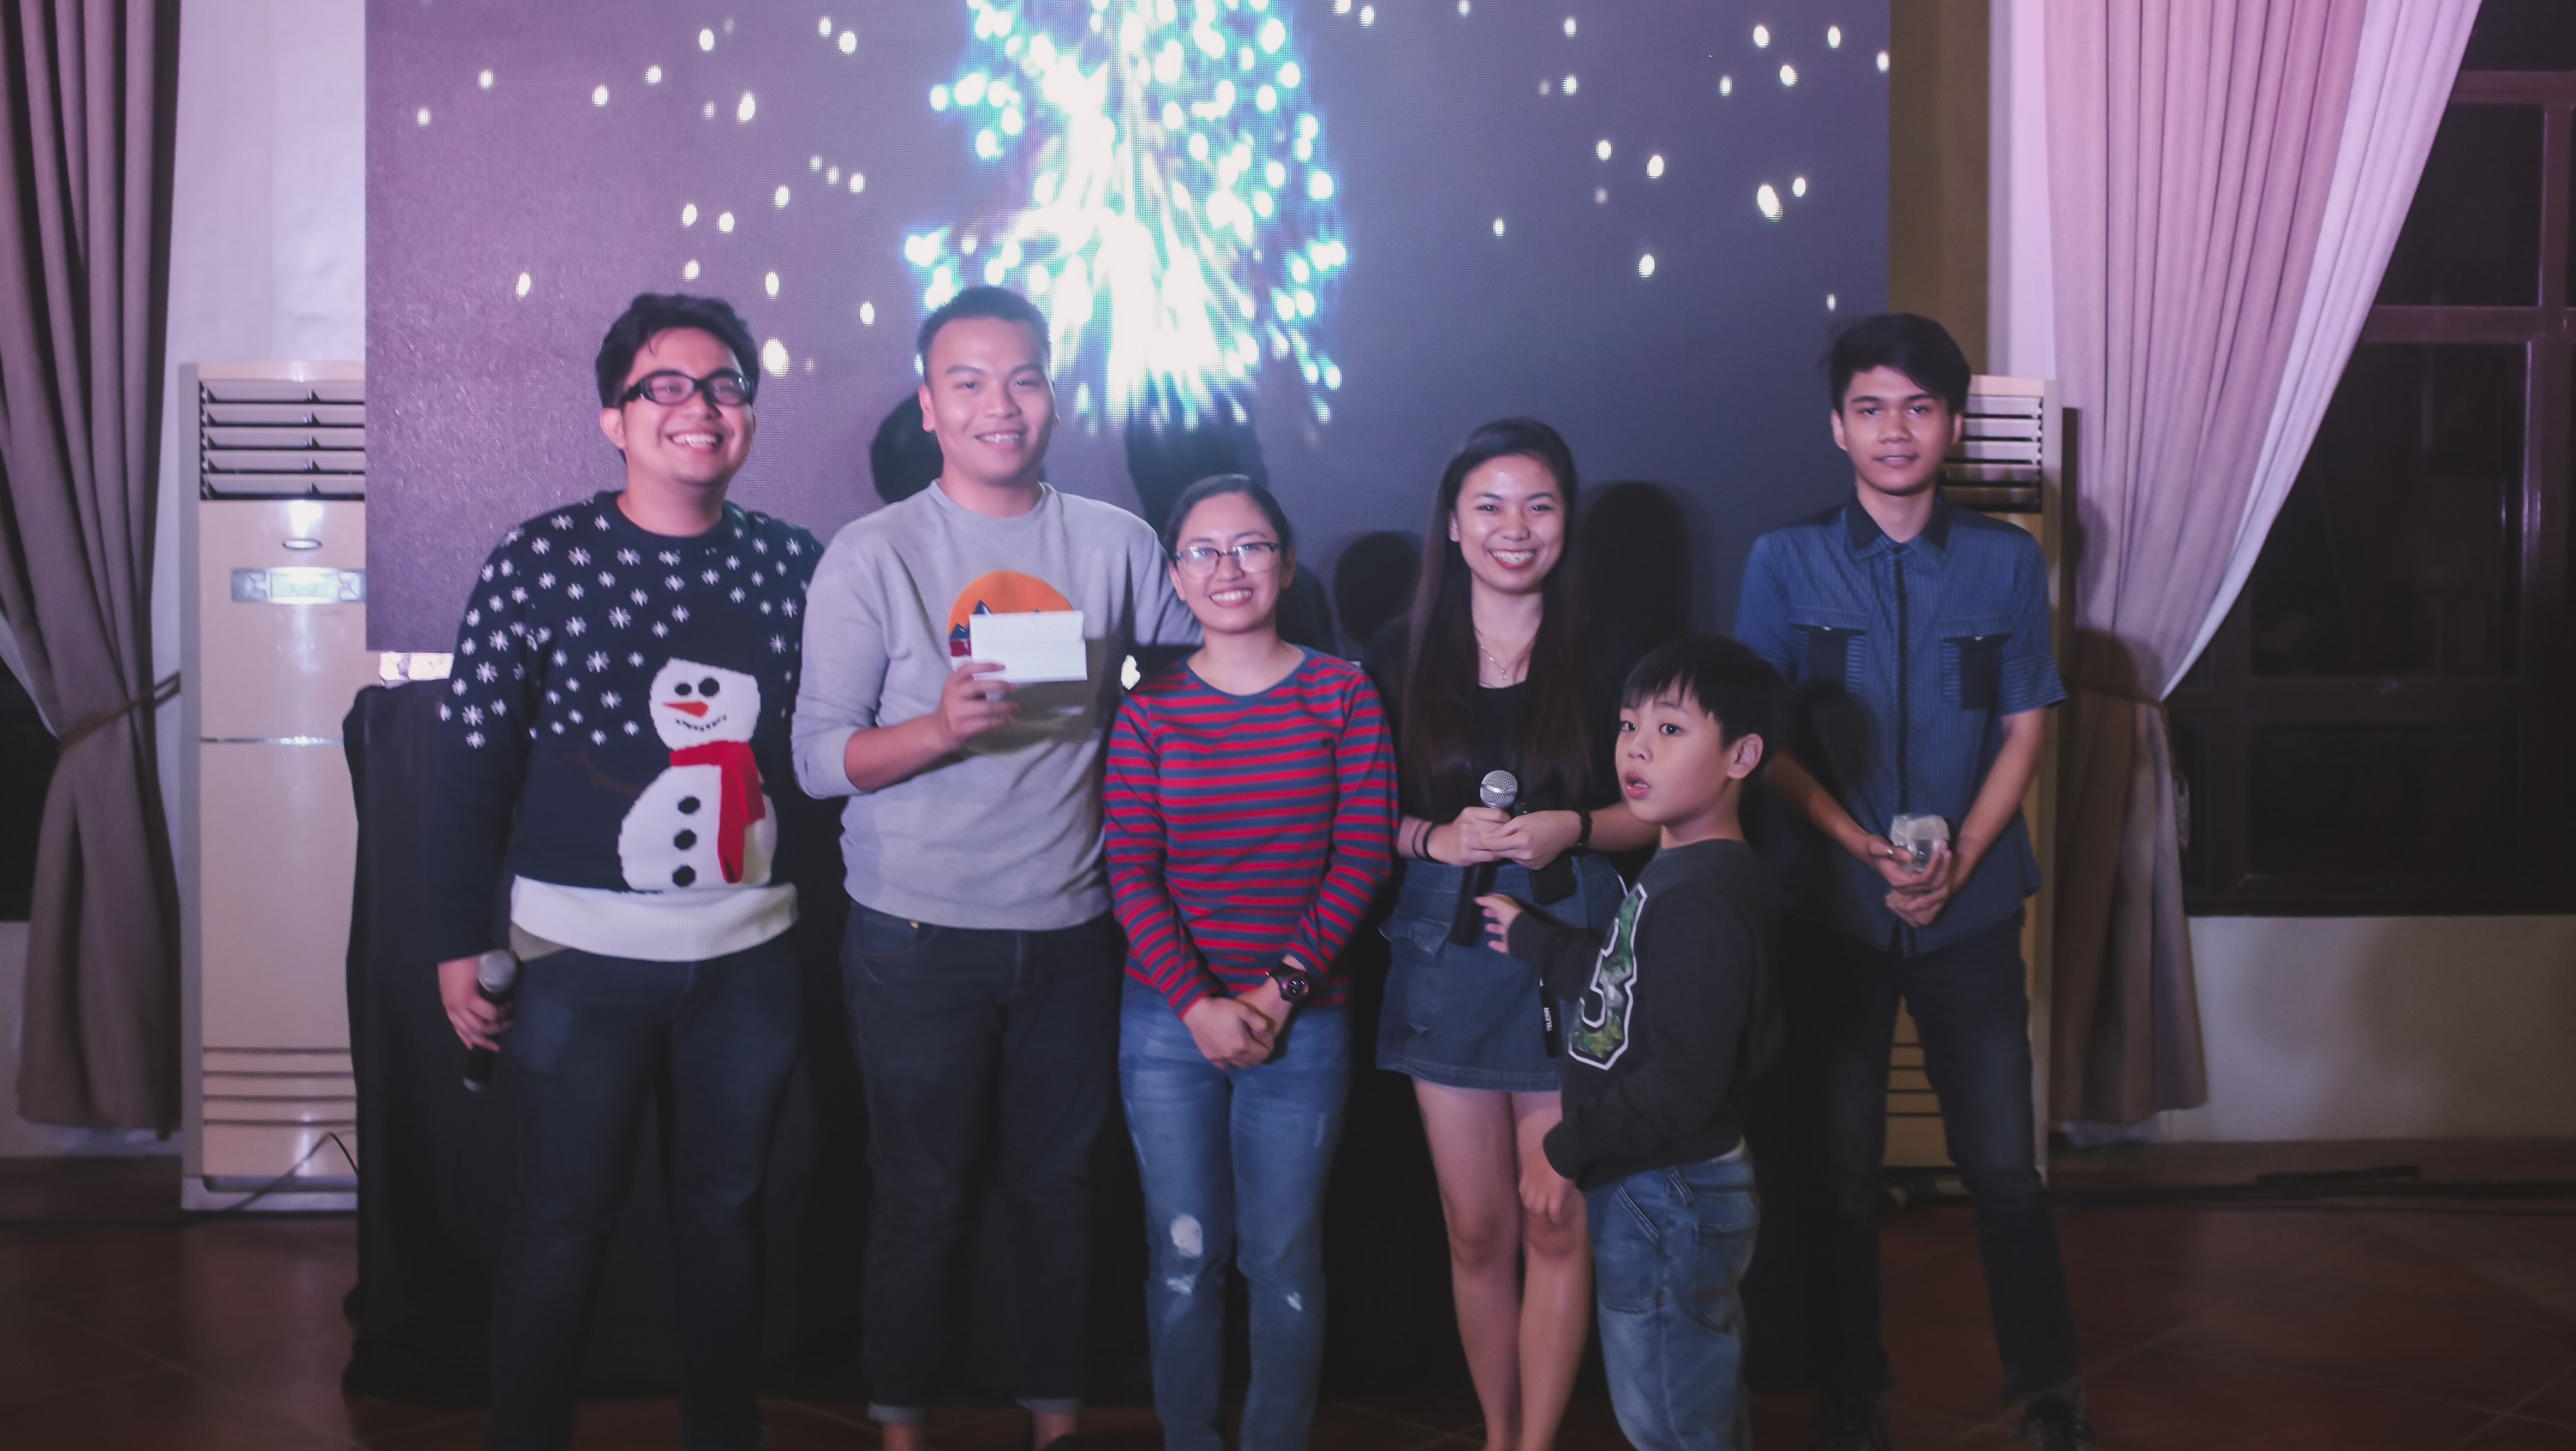 CHRISTMAS PARTY_2018-164288 x 2416